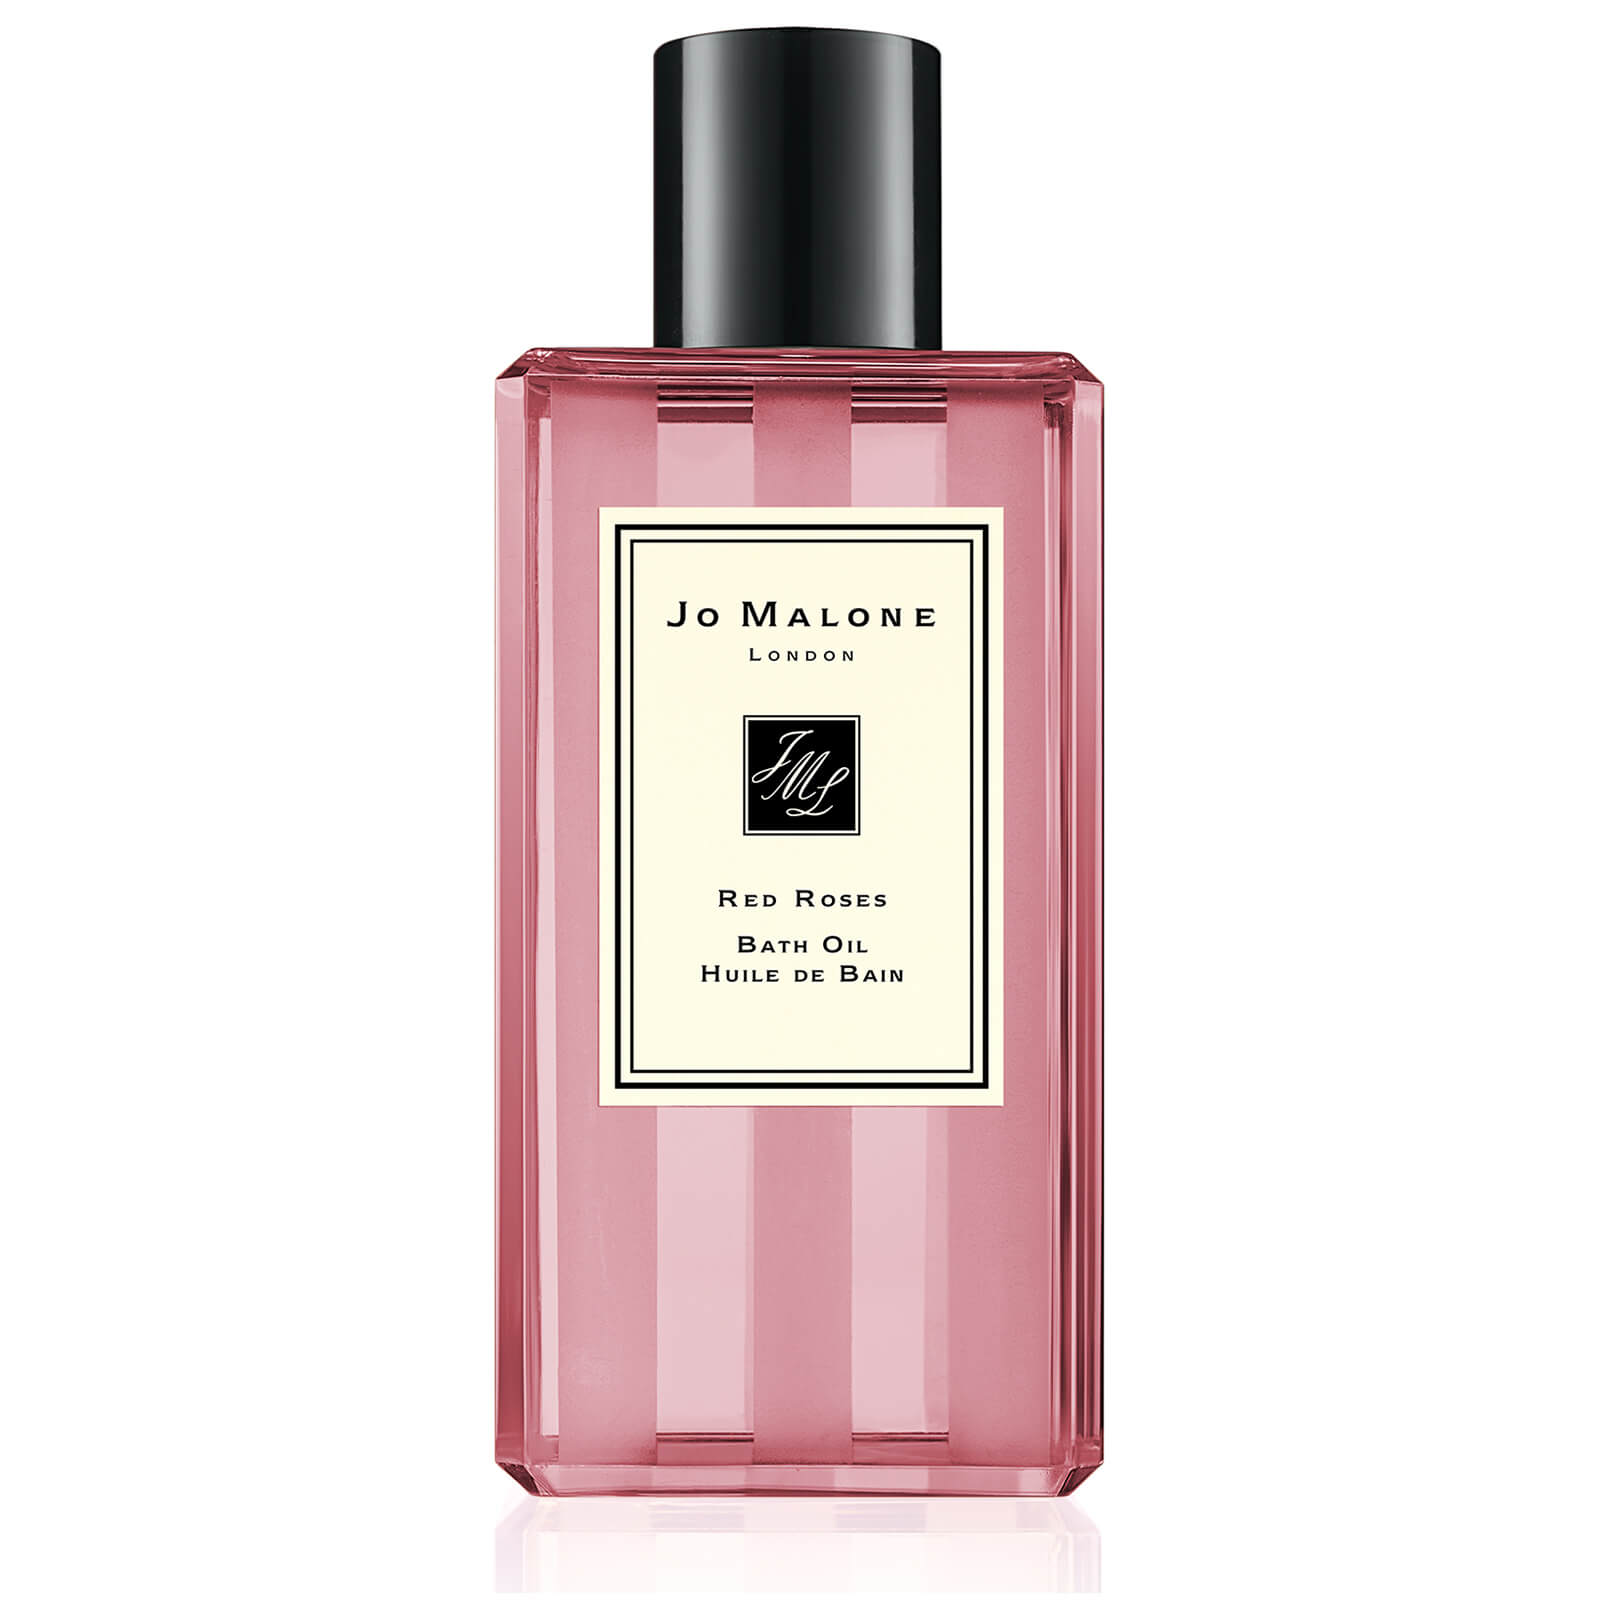 Jo Malone London Red Roses Bath Oil (Various Sizes) - 250ml